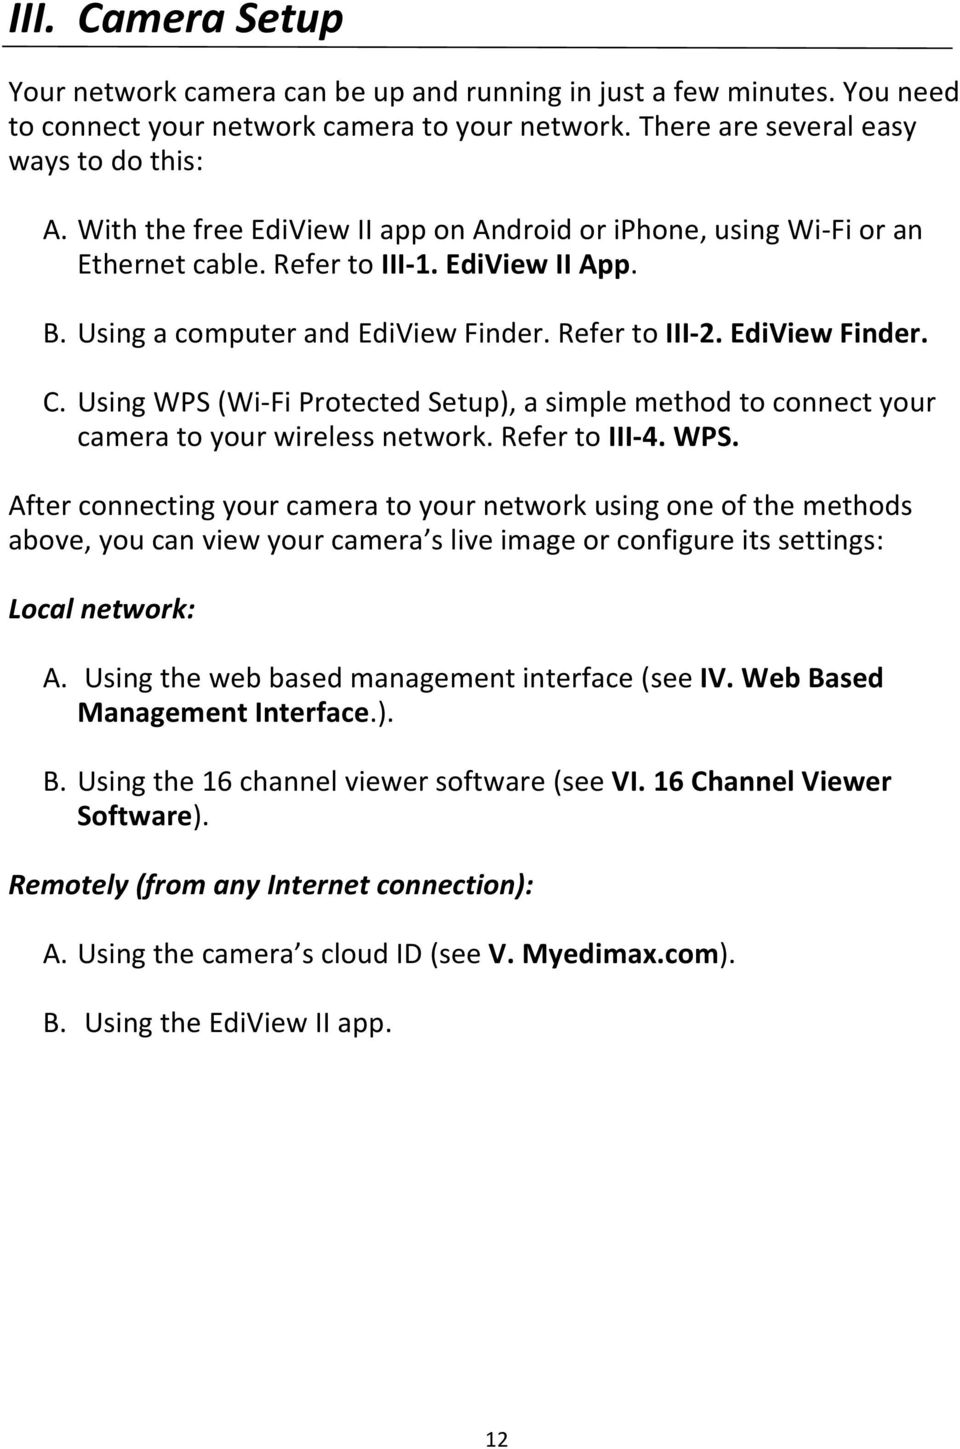 Using WPS (Wi-Fi Protected Setup), a simple method to connect your camera to your wireless network. Refer to III-4. WPS. After connecting your camera to your network using one of the methods above, you can view your camera s live image or configure its settings: Local network: A.